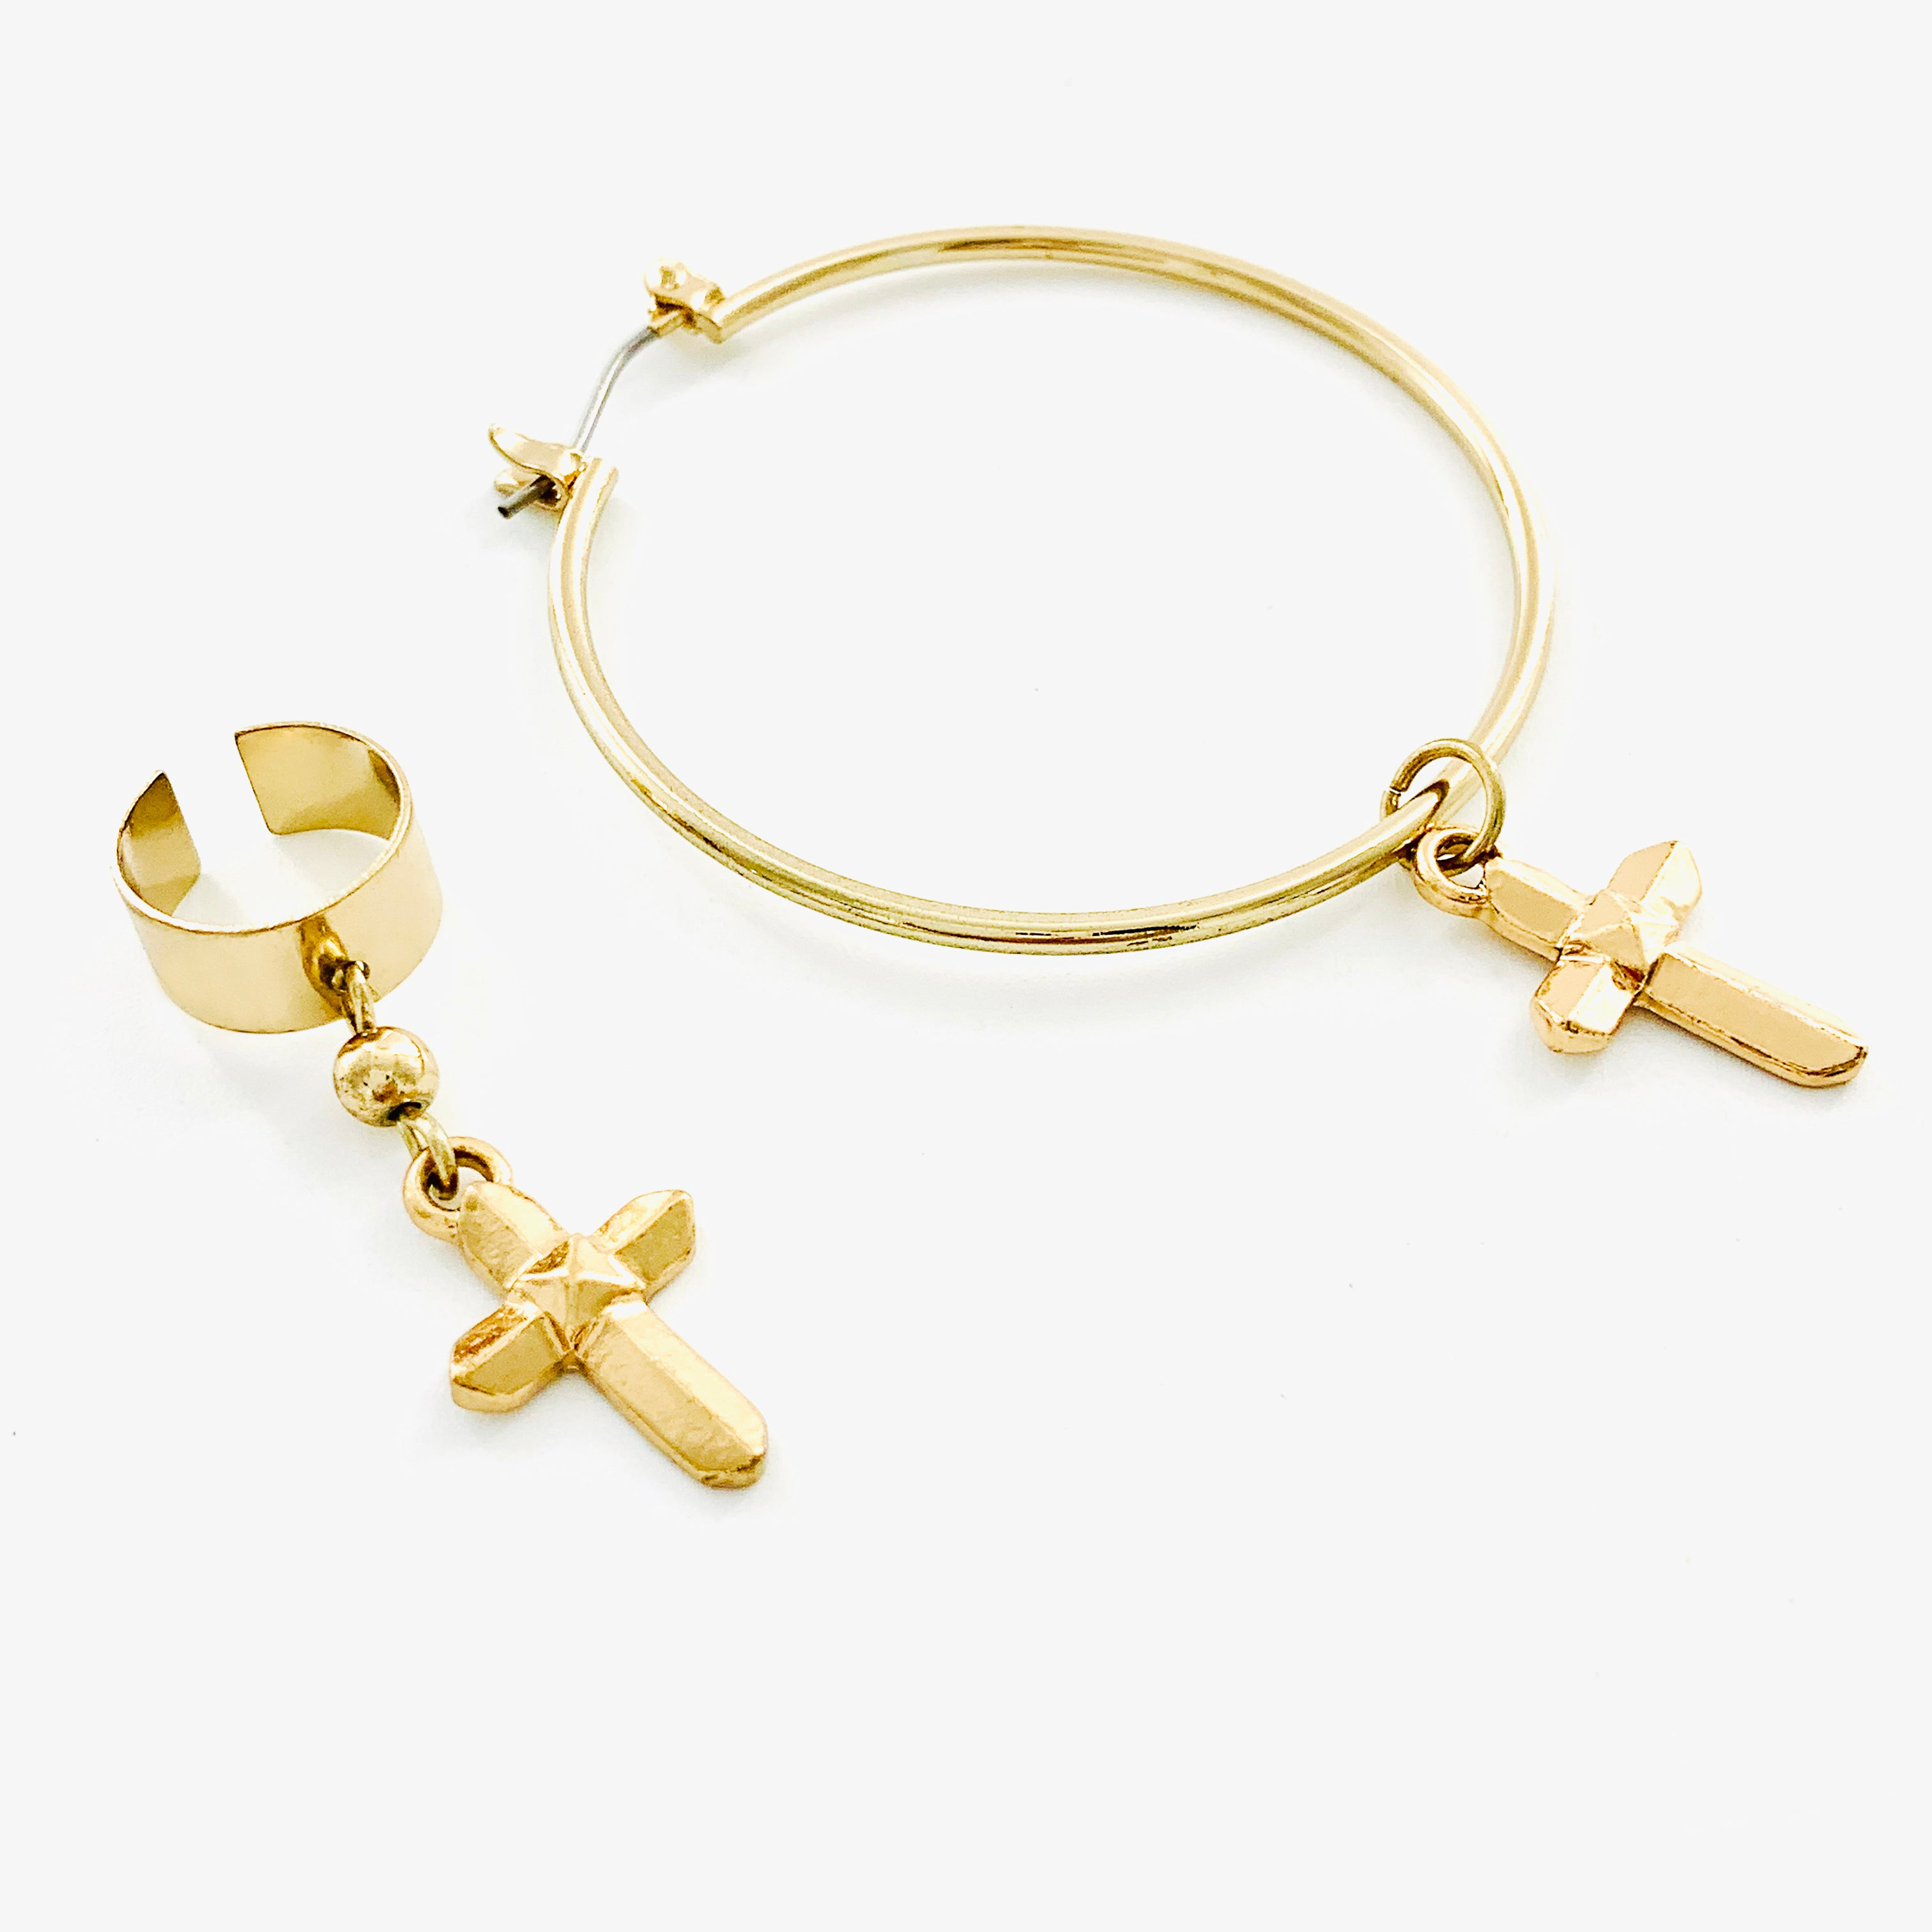 Gold hoop earring with cross charm and ear cuff